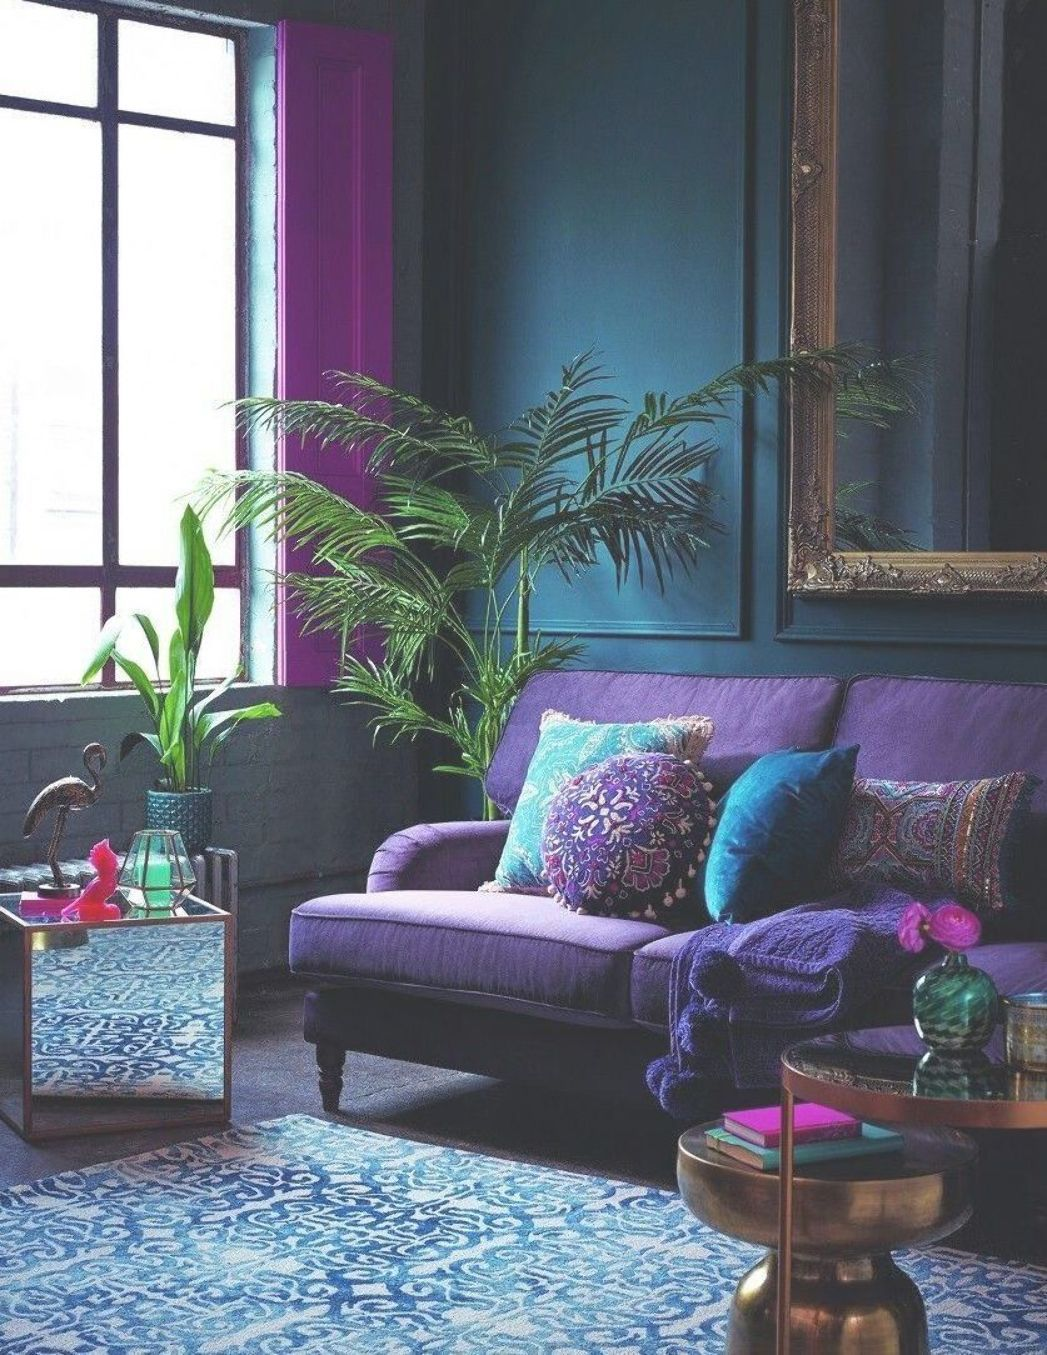 10+ Top Purple And Turquoise Living Room Ideas